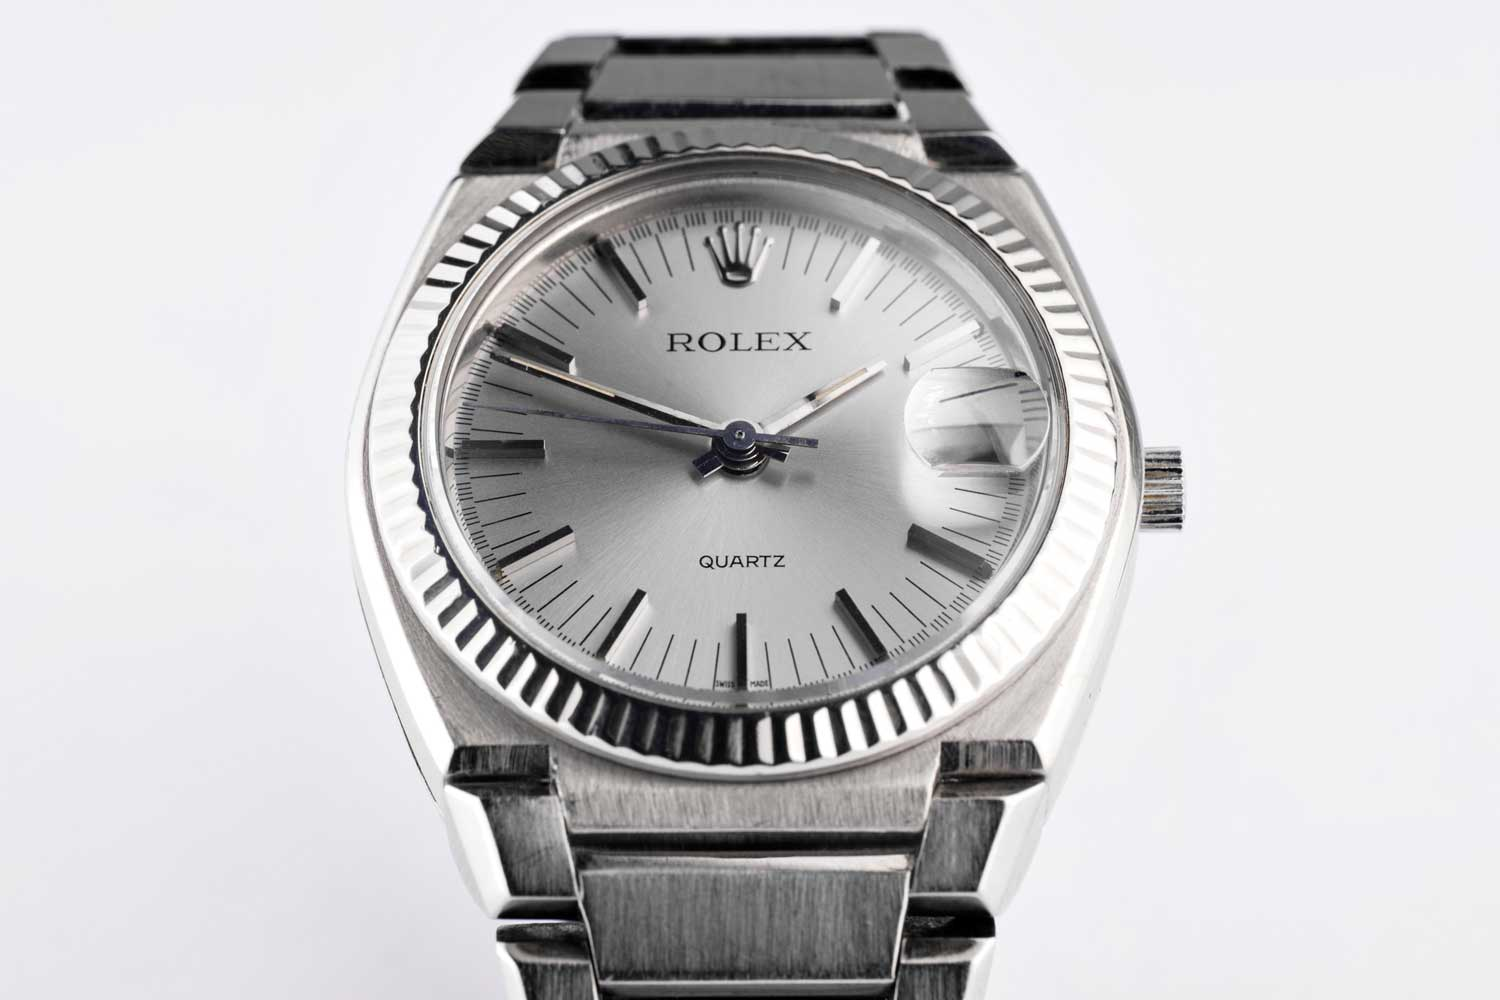 Rolex Beta 21 watch